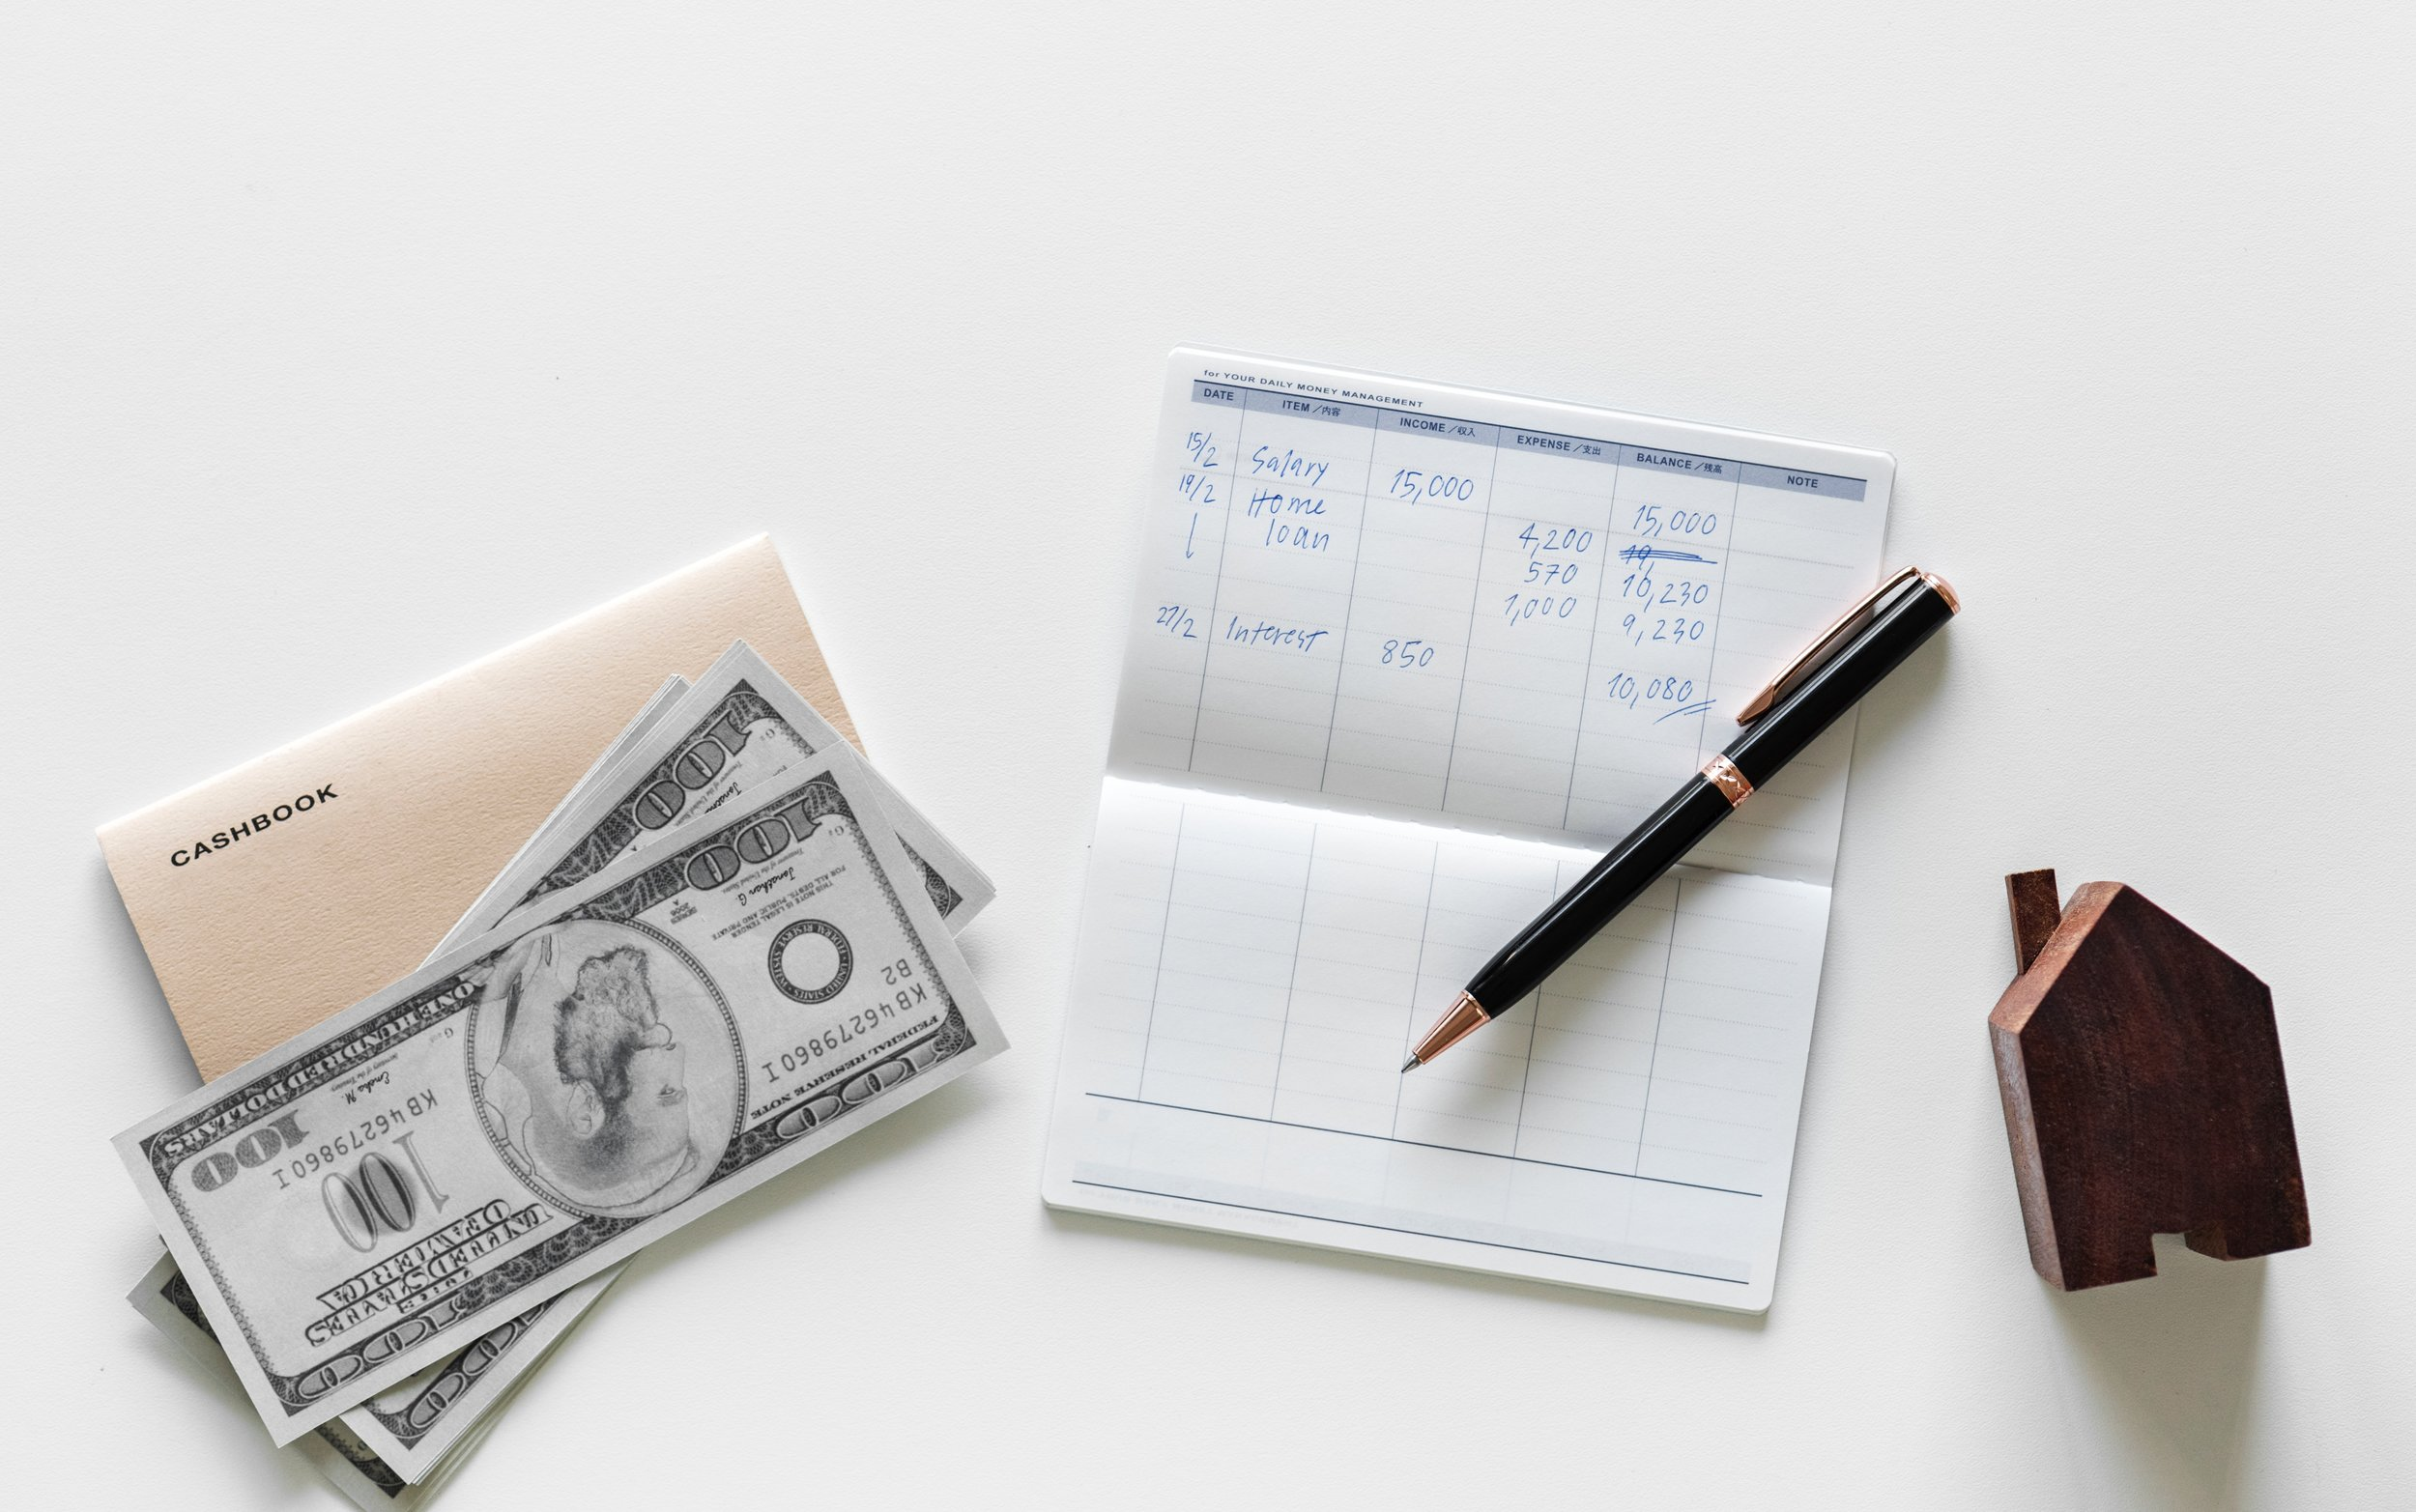 Behaviors worth changing to improve your financial health. -